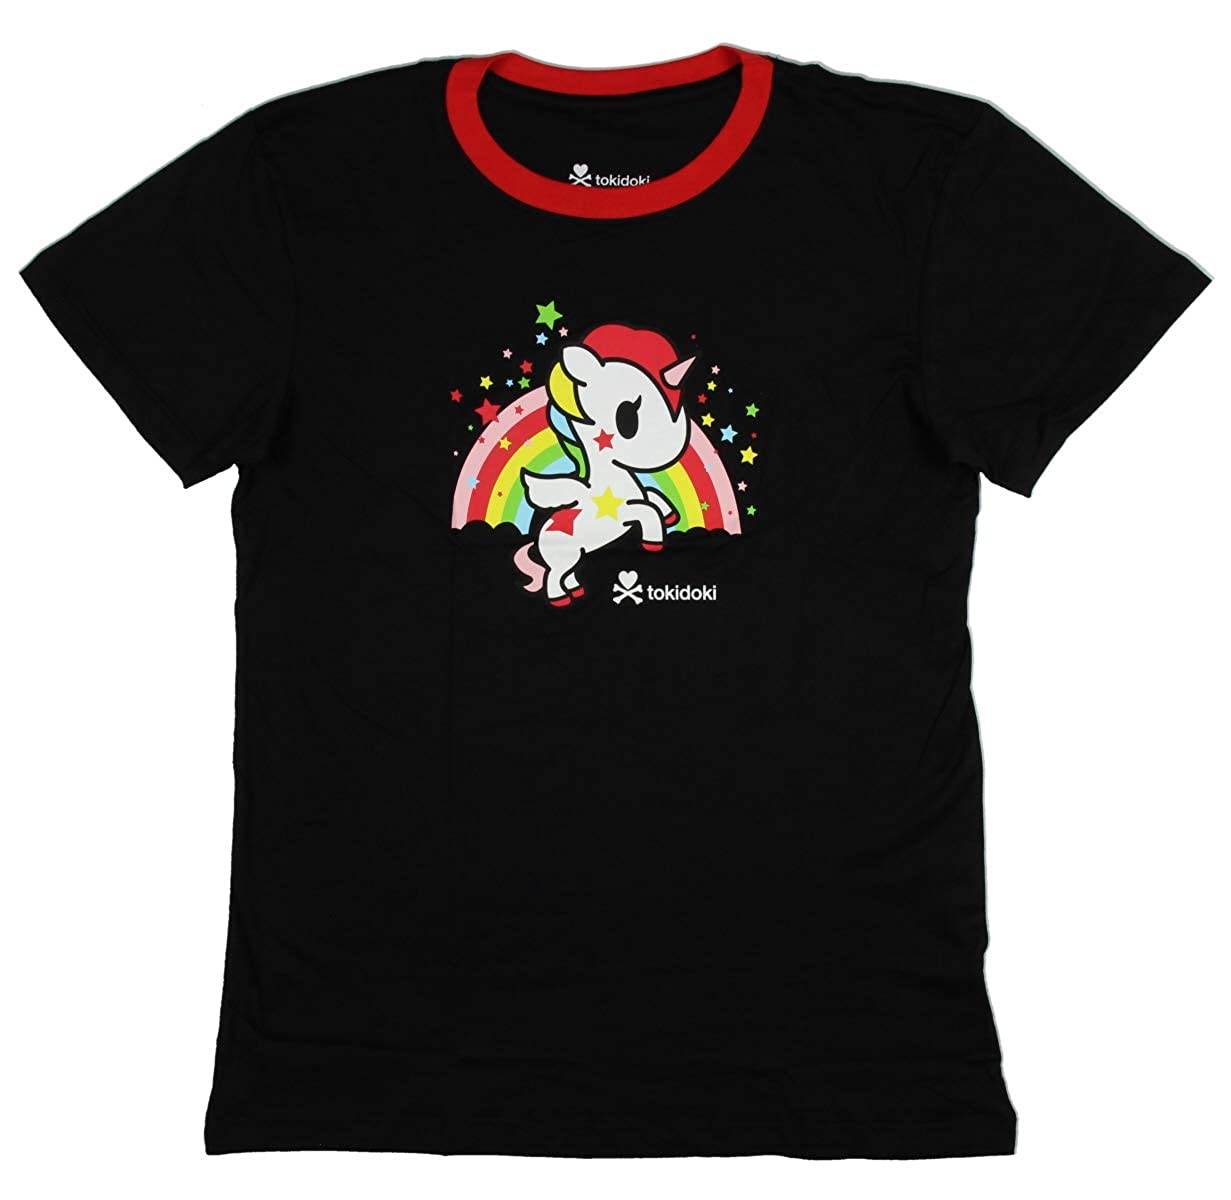 Tokidoki Women's Unicorno Stellina Rainbow Boy Fit Cut T-Shirt